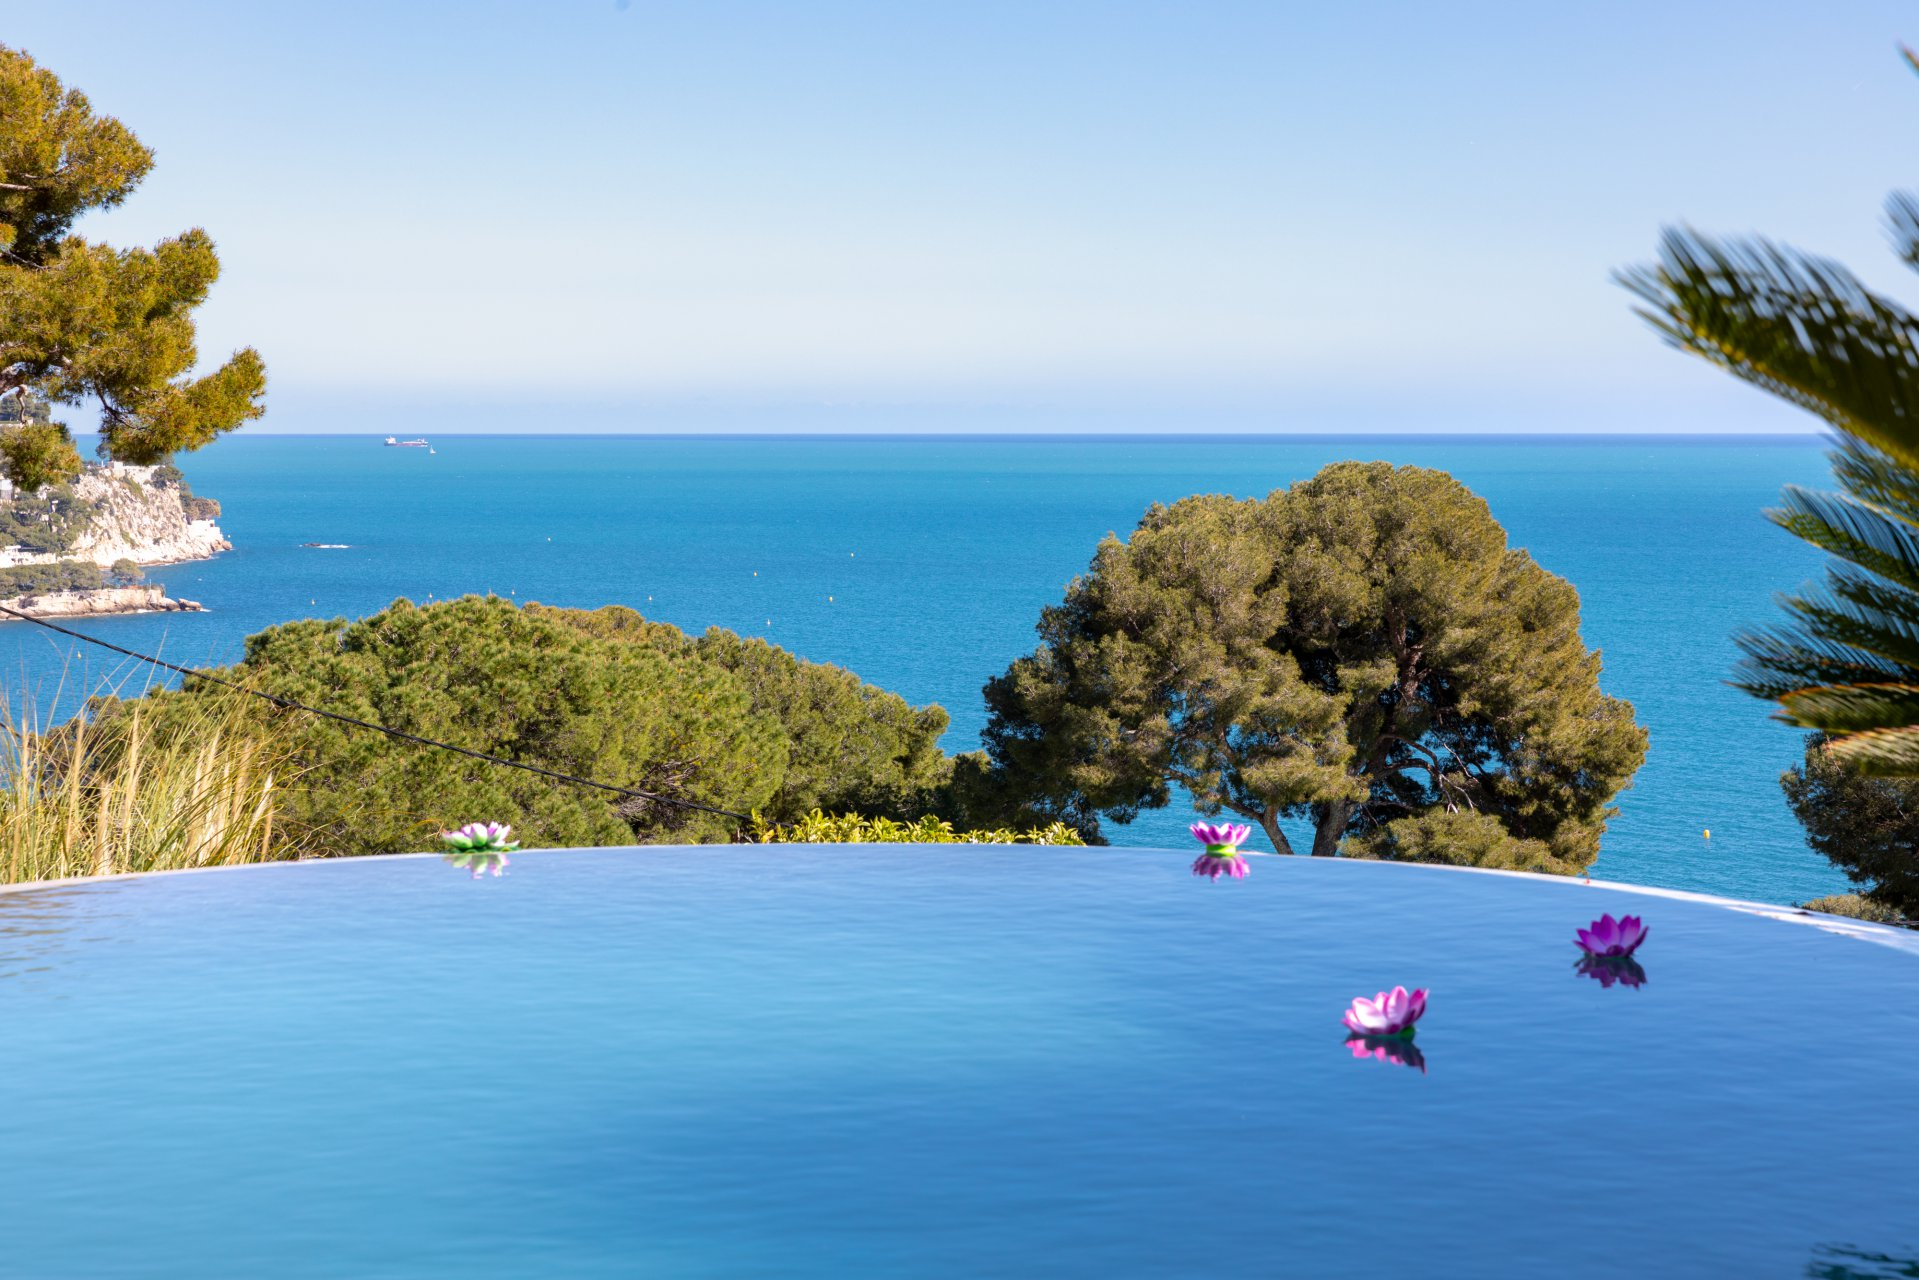 Eze - Splendid villa overlooking the sea